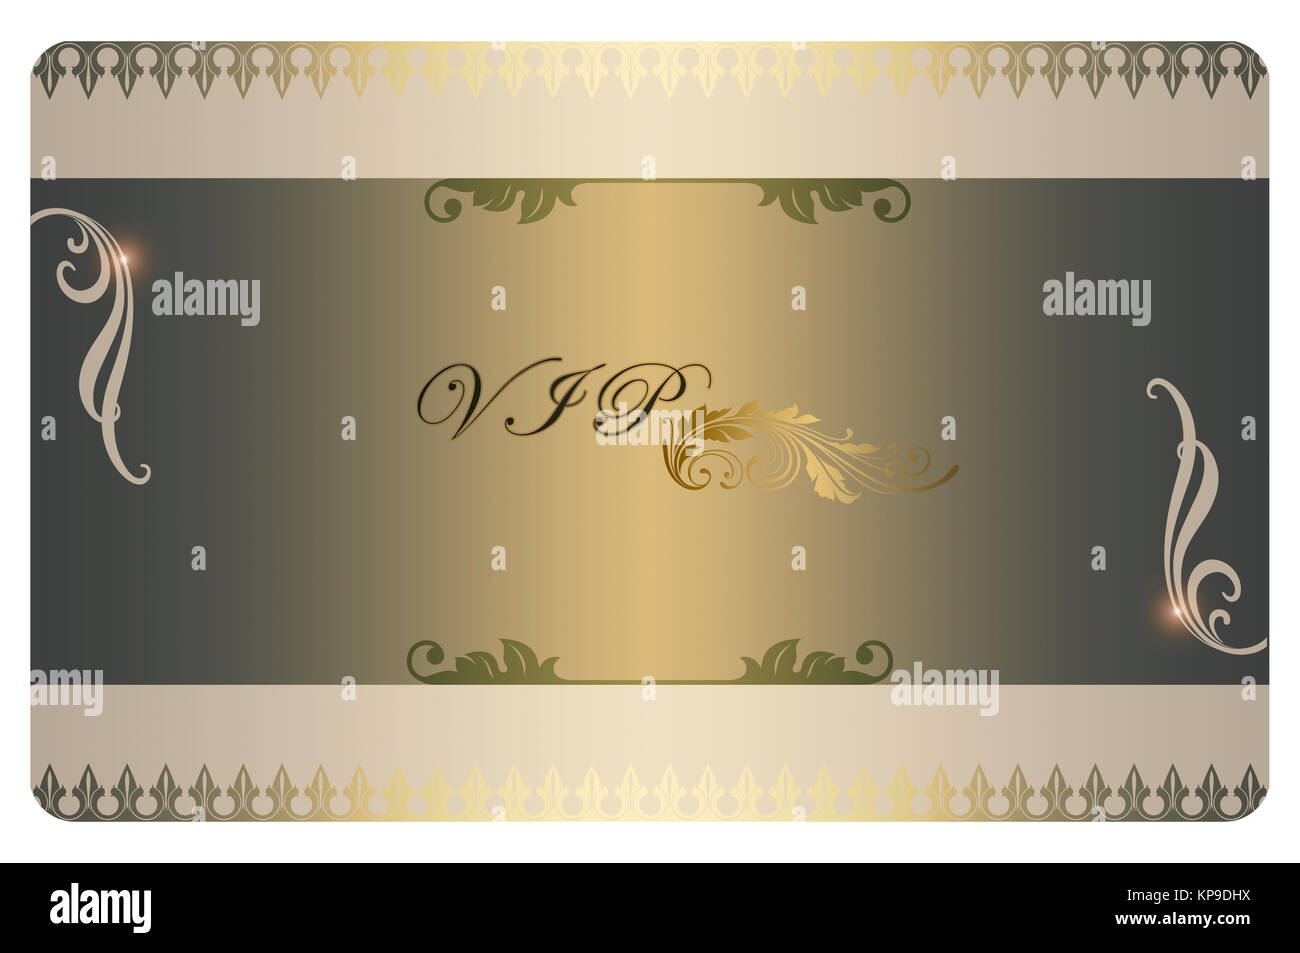 Vip card design stock photos vip card design stock images alamy template with decorative patterns for the design of business card vip business card background colourmoves